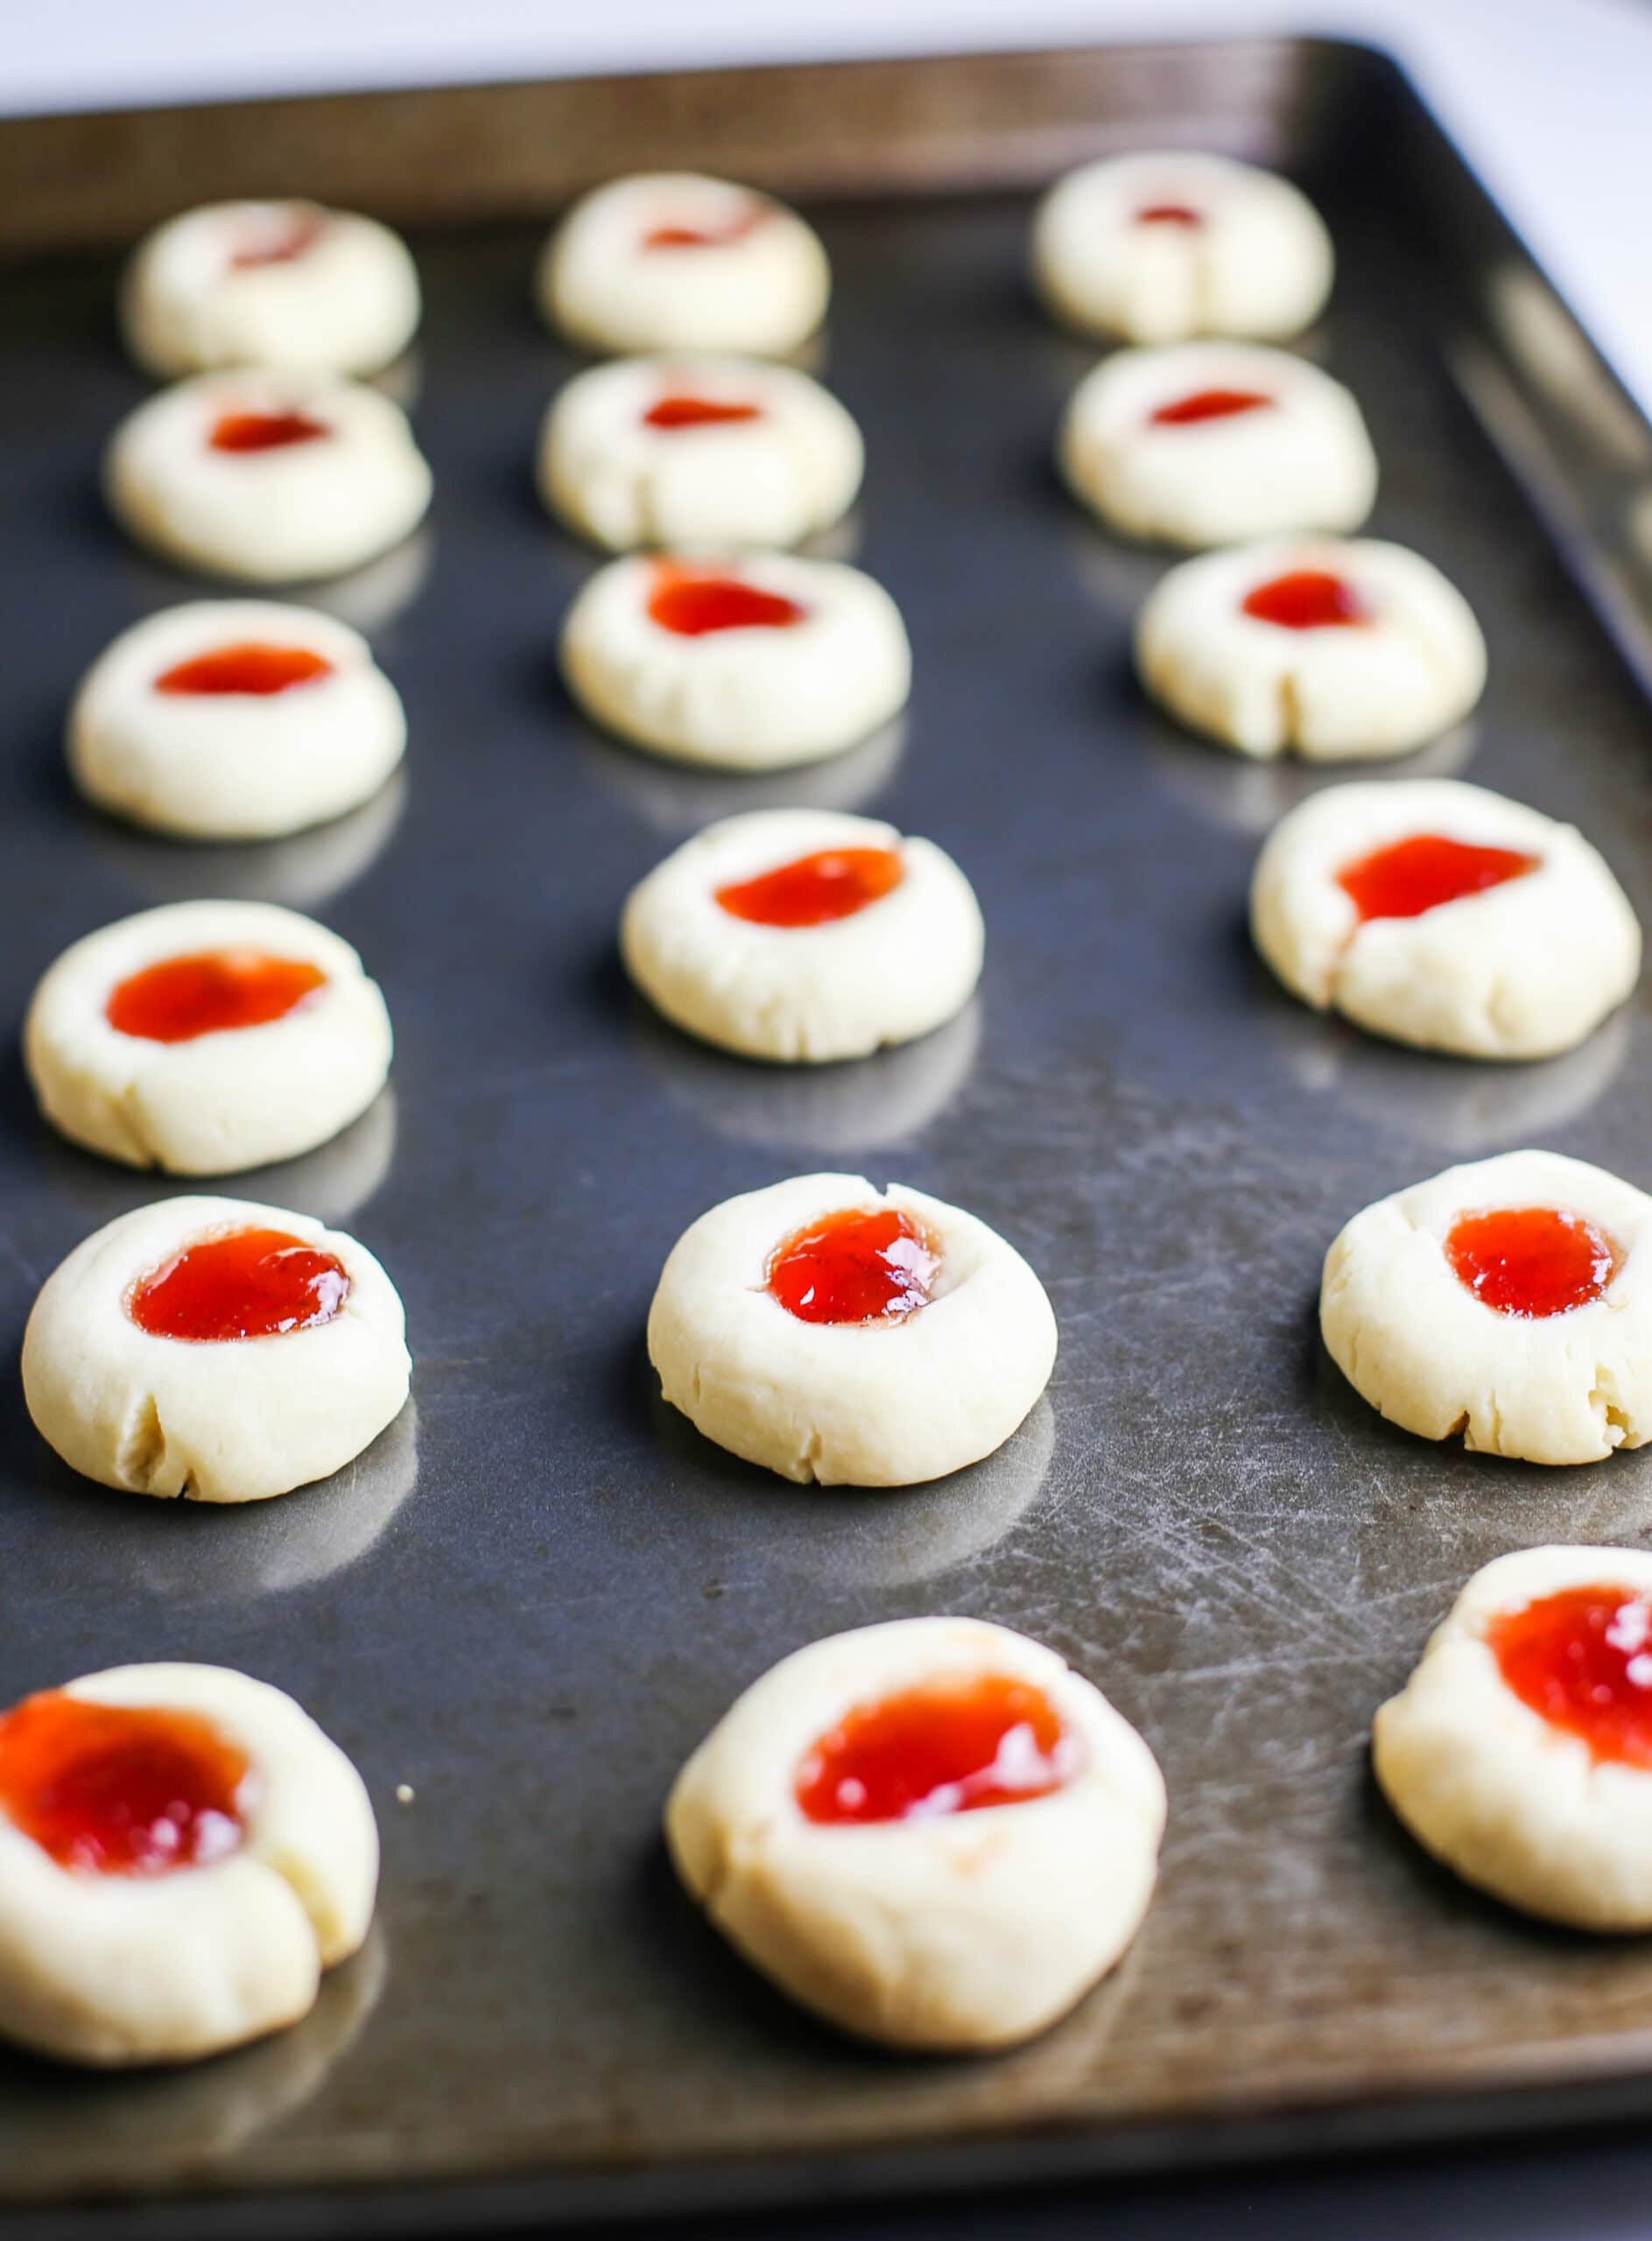 Baked condensed milk thumbprint cookies filled with strawberry jam on a baking sheet.